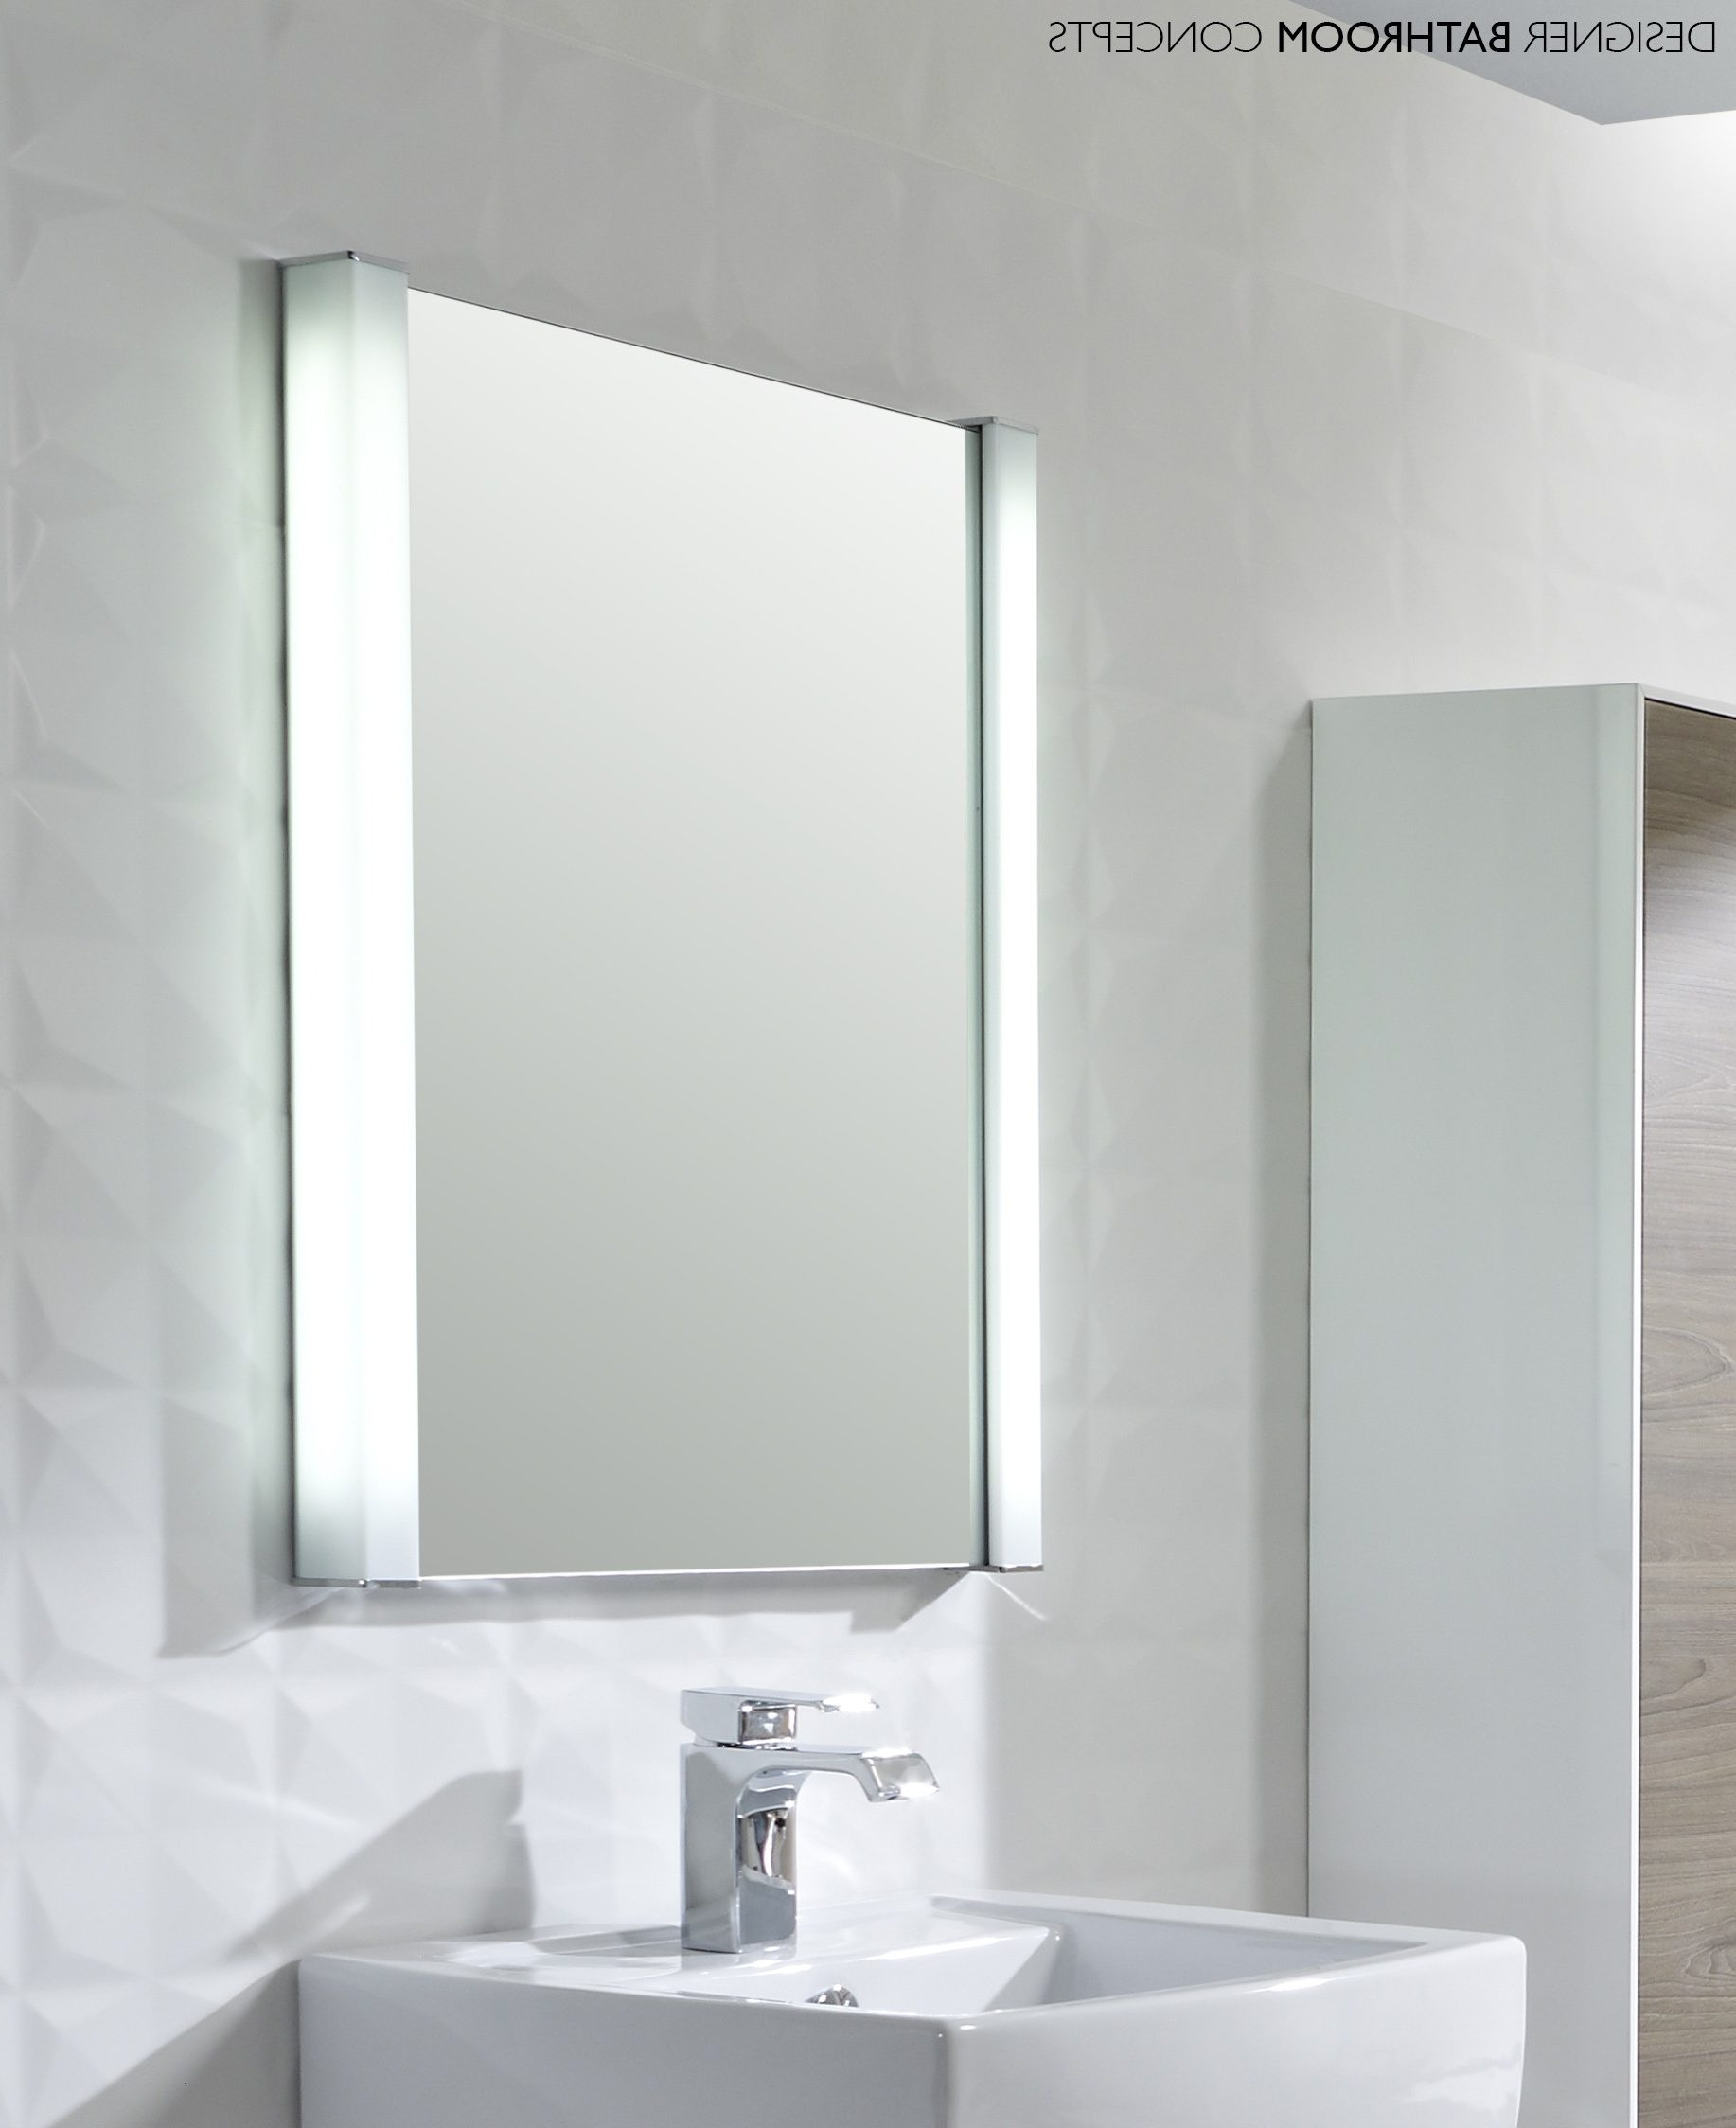 Illuminated Dressing Table Bathroom Mirrors Wall Mounted White Within Free Standing Dressing Table Mirror (Image 9 of 15)